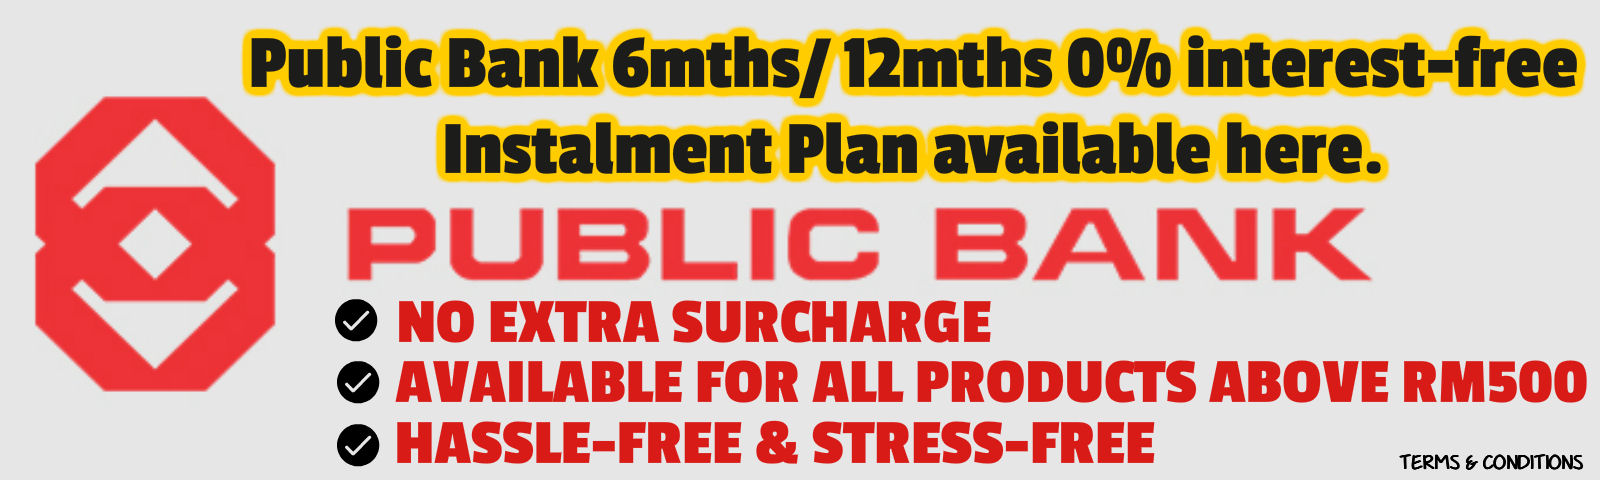 Public Bank 6 months and 12 months interest-free promotion.